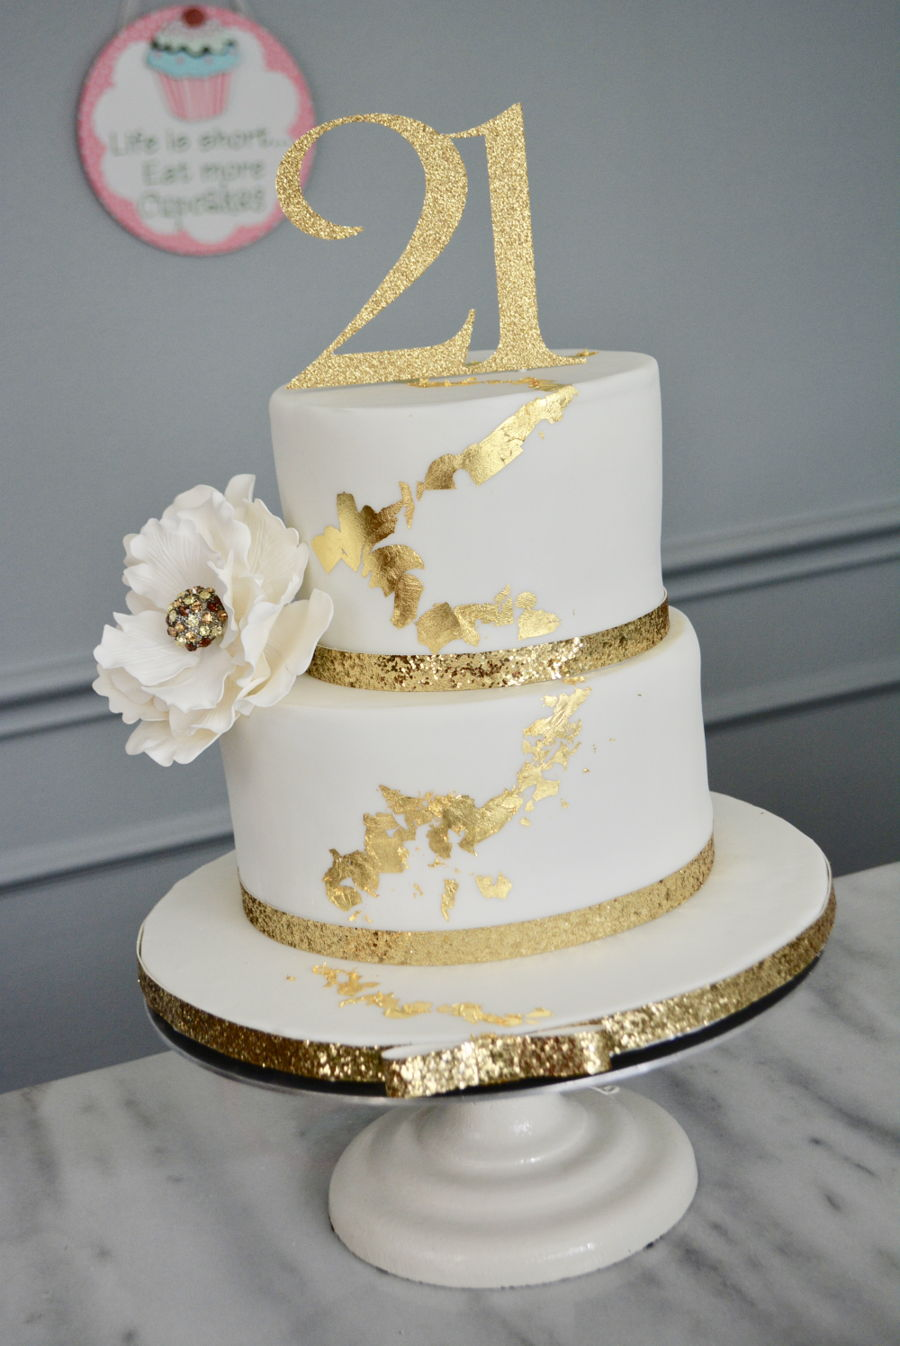 Gold Leaf Cake Decorating